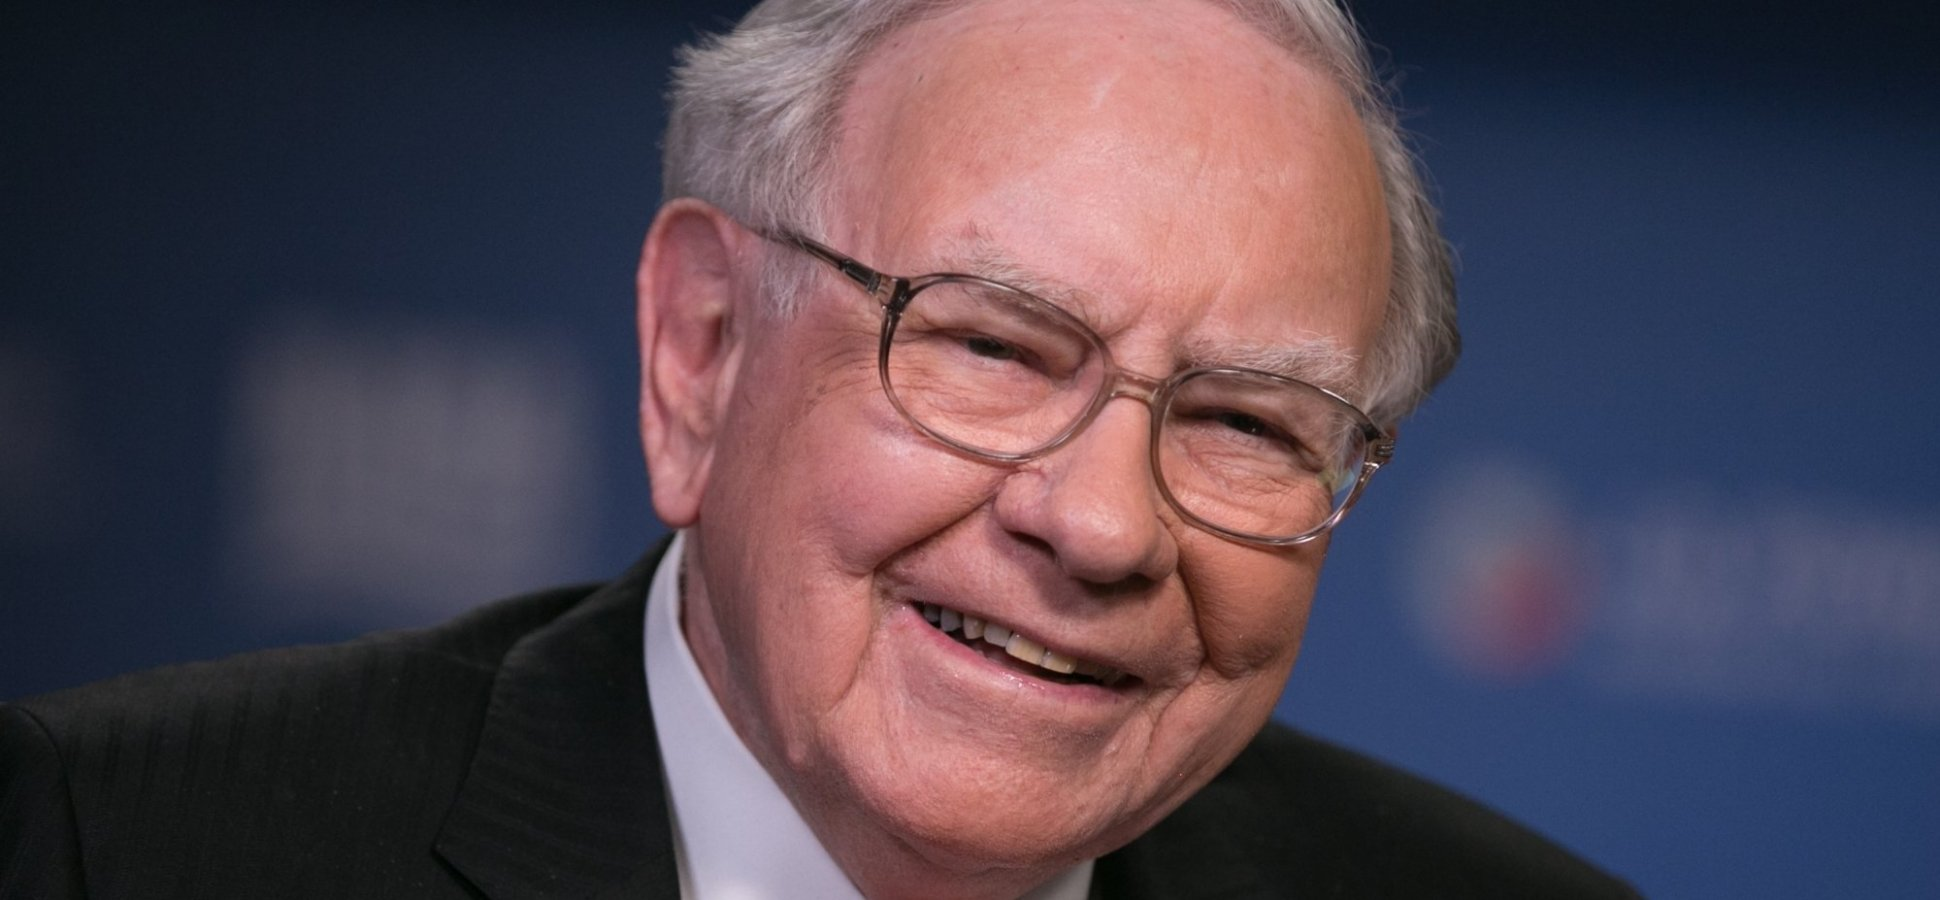 Warren Buffett Just Came Out With 4 Great Pieces of Investment Advice (and a Rudyard Kipling Quote)